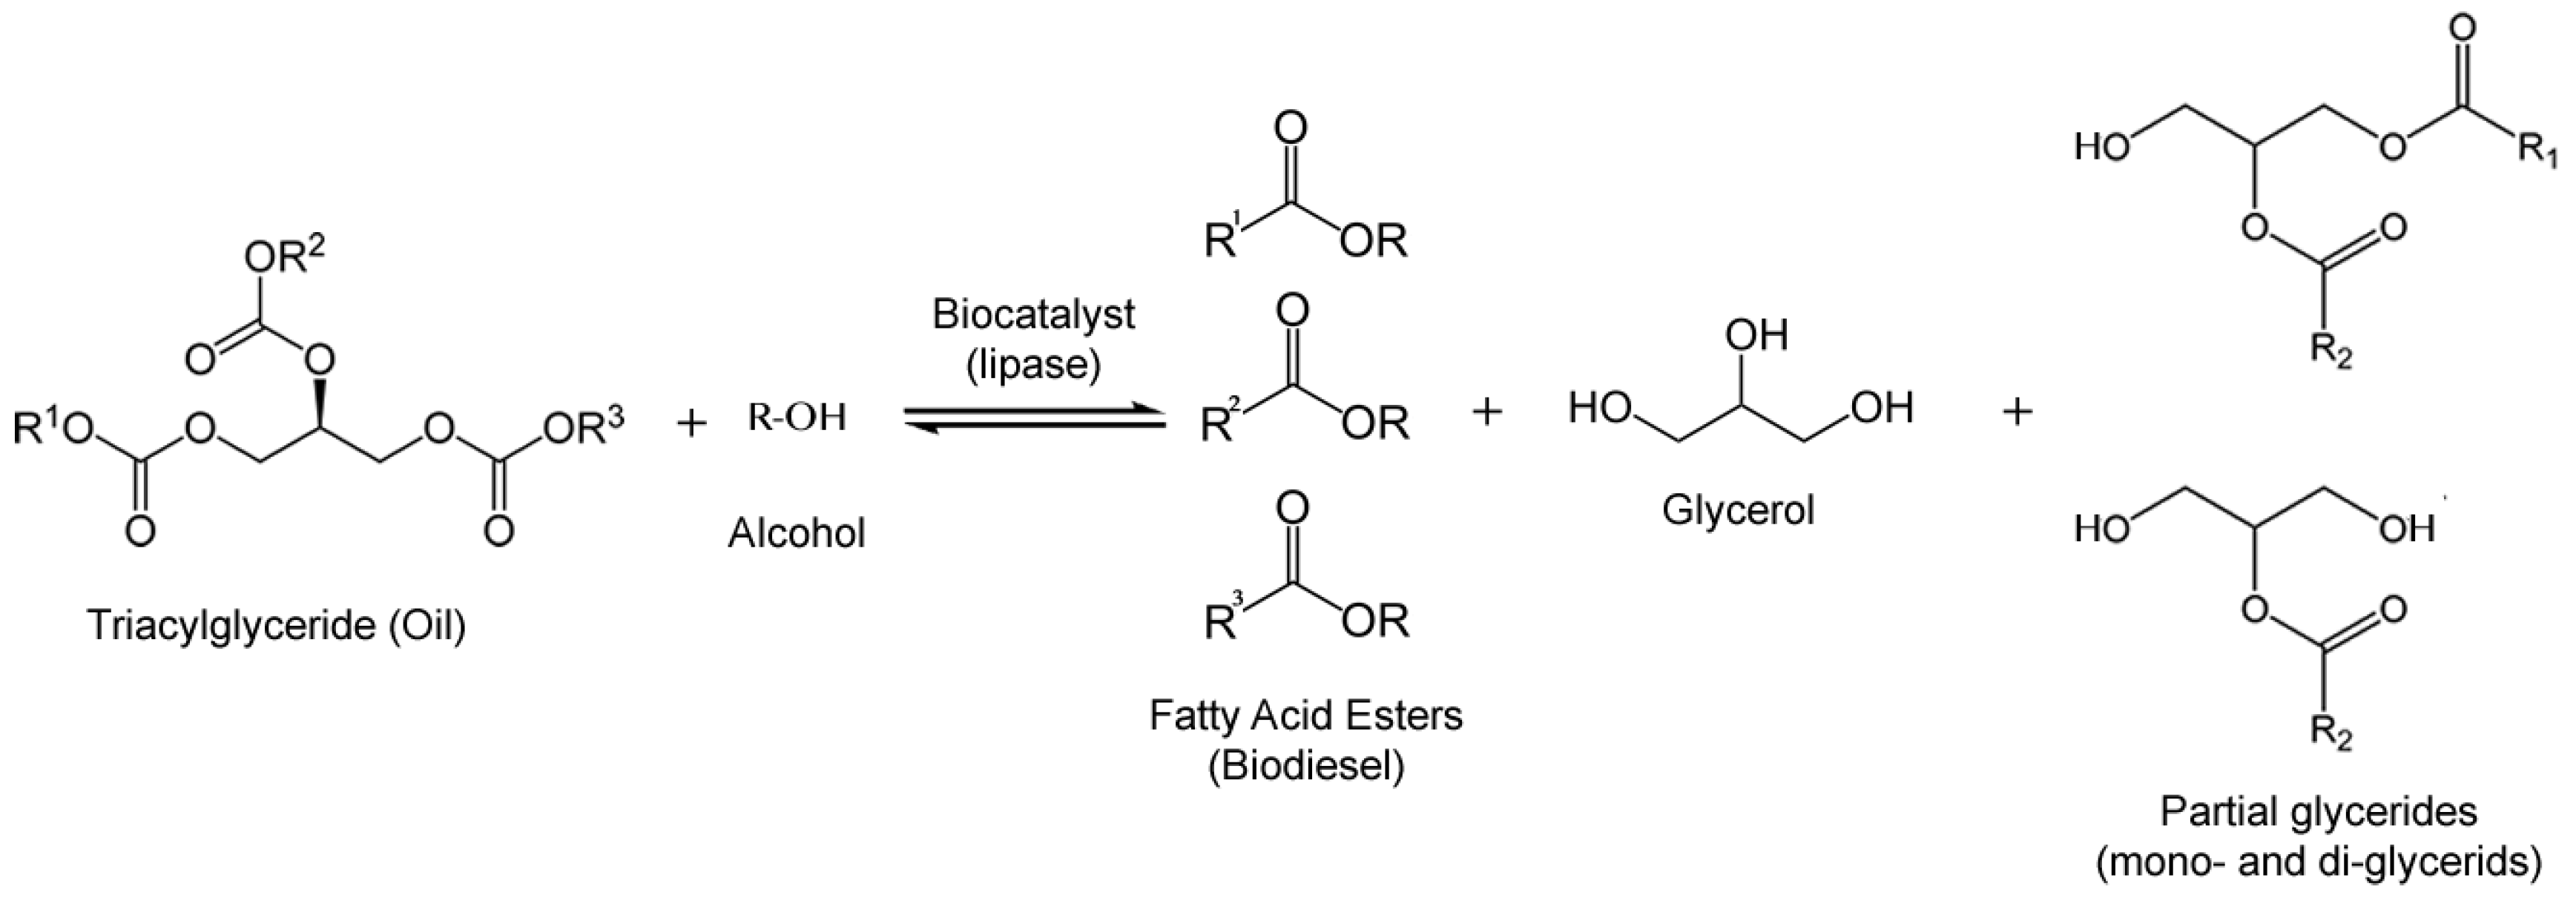 production of biodiesel by enzymatic transesterification Biodiesel production by transesterification using immobilized enzymatic the production of biodiesel transesterification for biodiesel production.